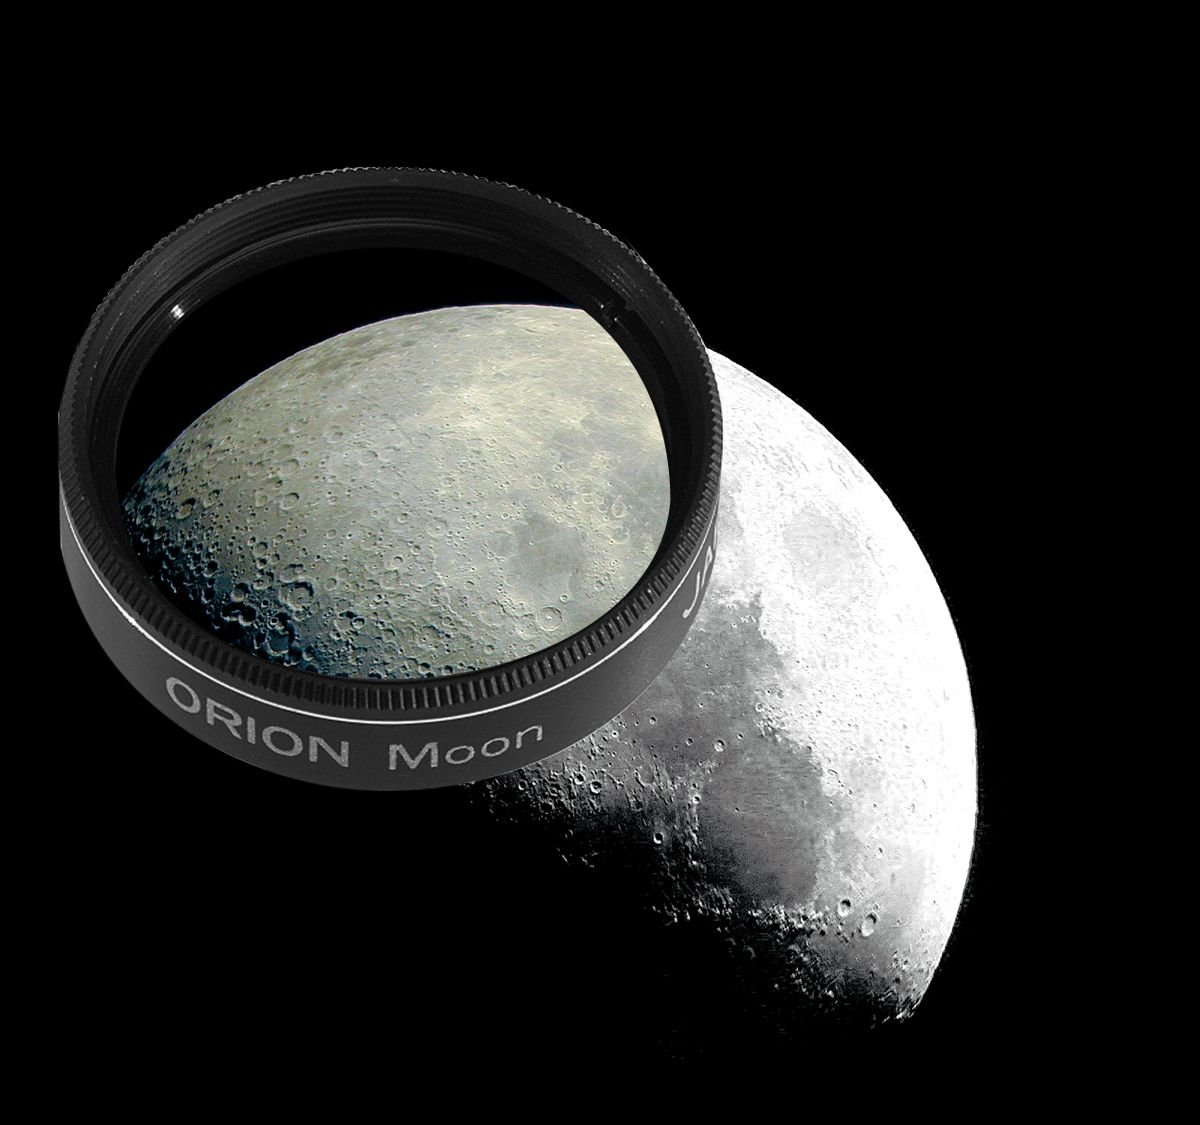 Orion 05662 1.25-Inch 13 Percent Transmission Moon Filter (Black) by Orion